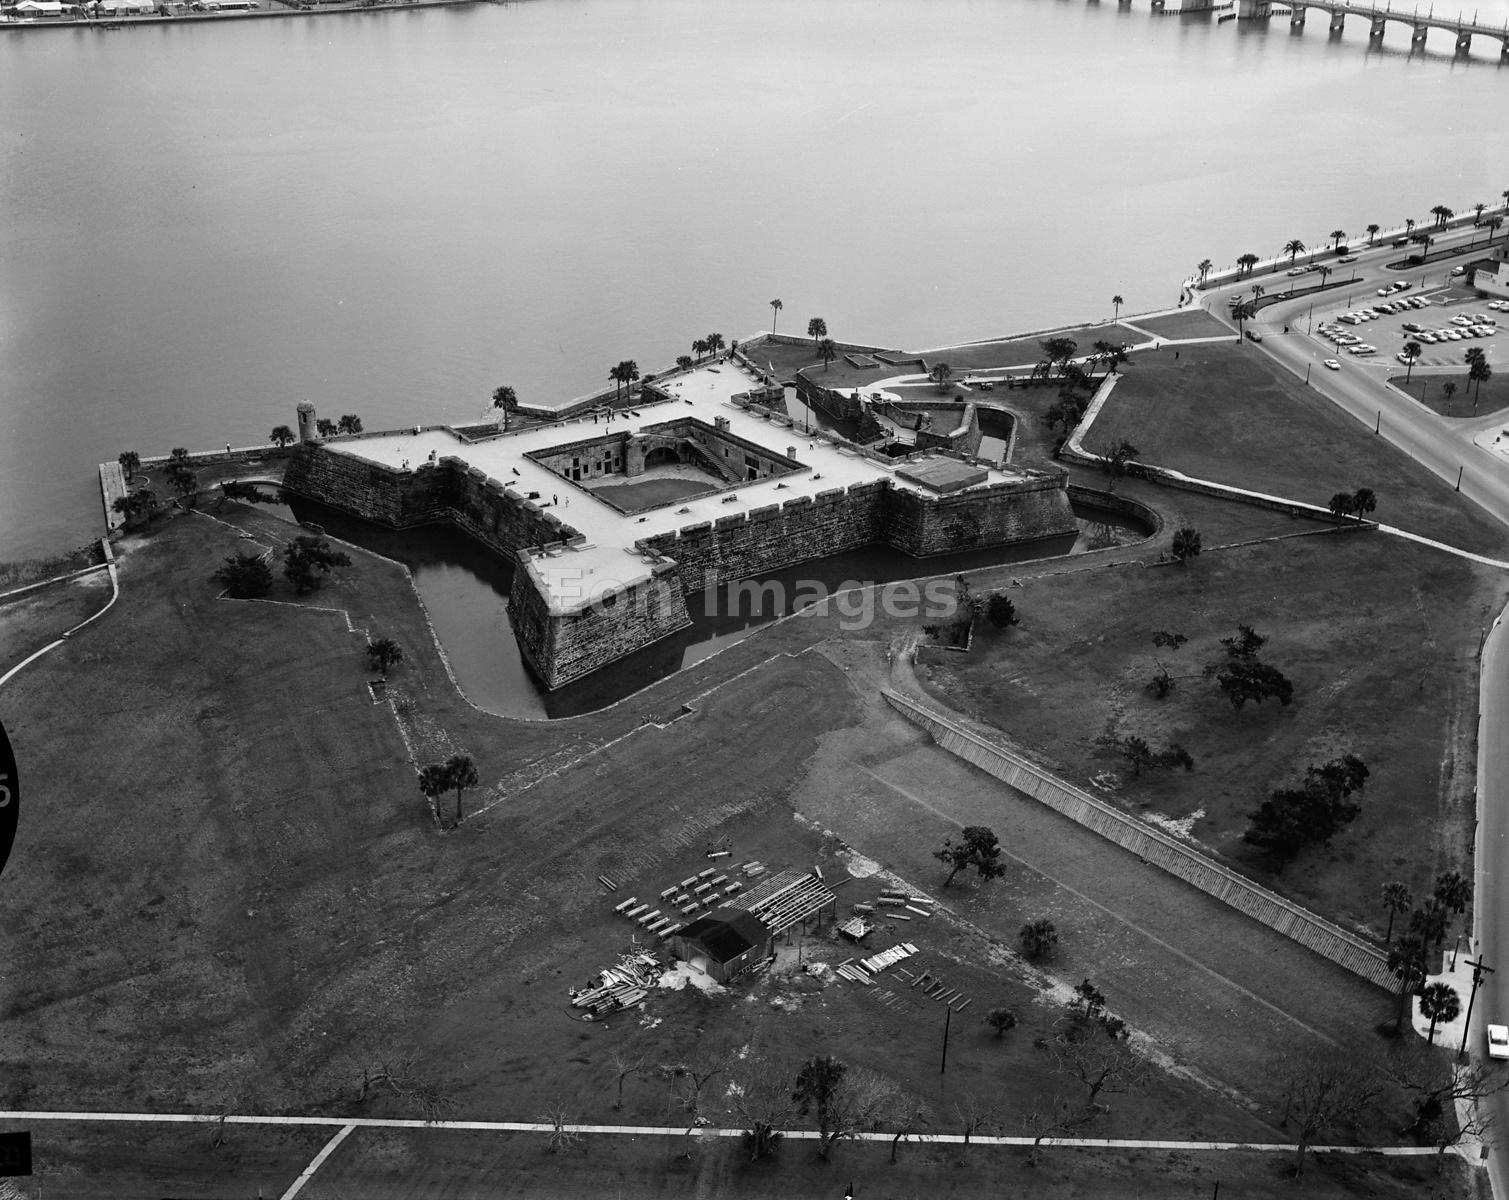 Aerial view of the Castillo de San Marcos, St. Augustine, Florida